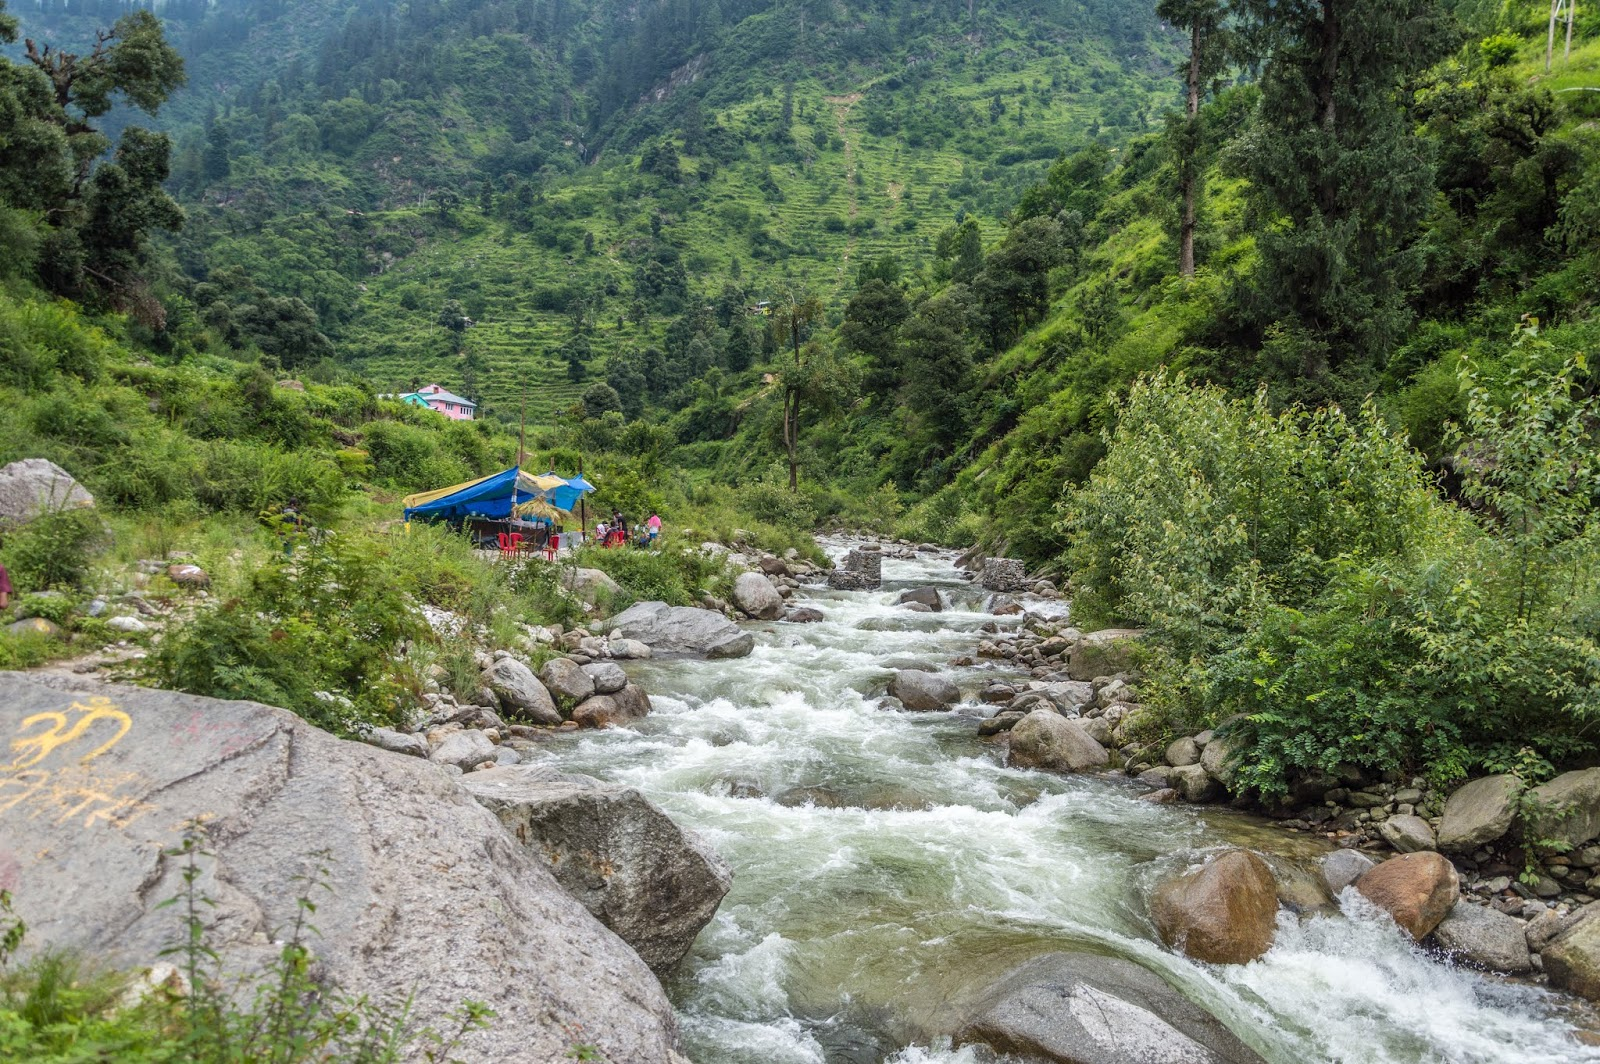 Nature at its vest during Srikhand Mahadev Yatra. A makeshift cafe on the banks of river.